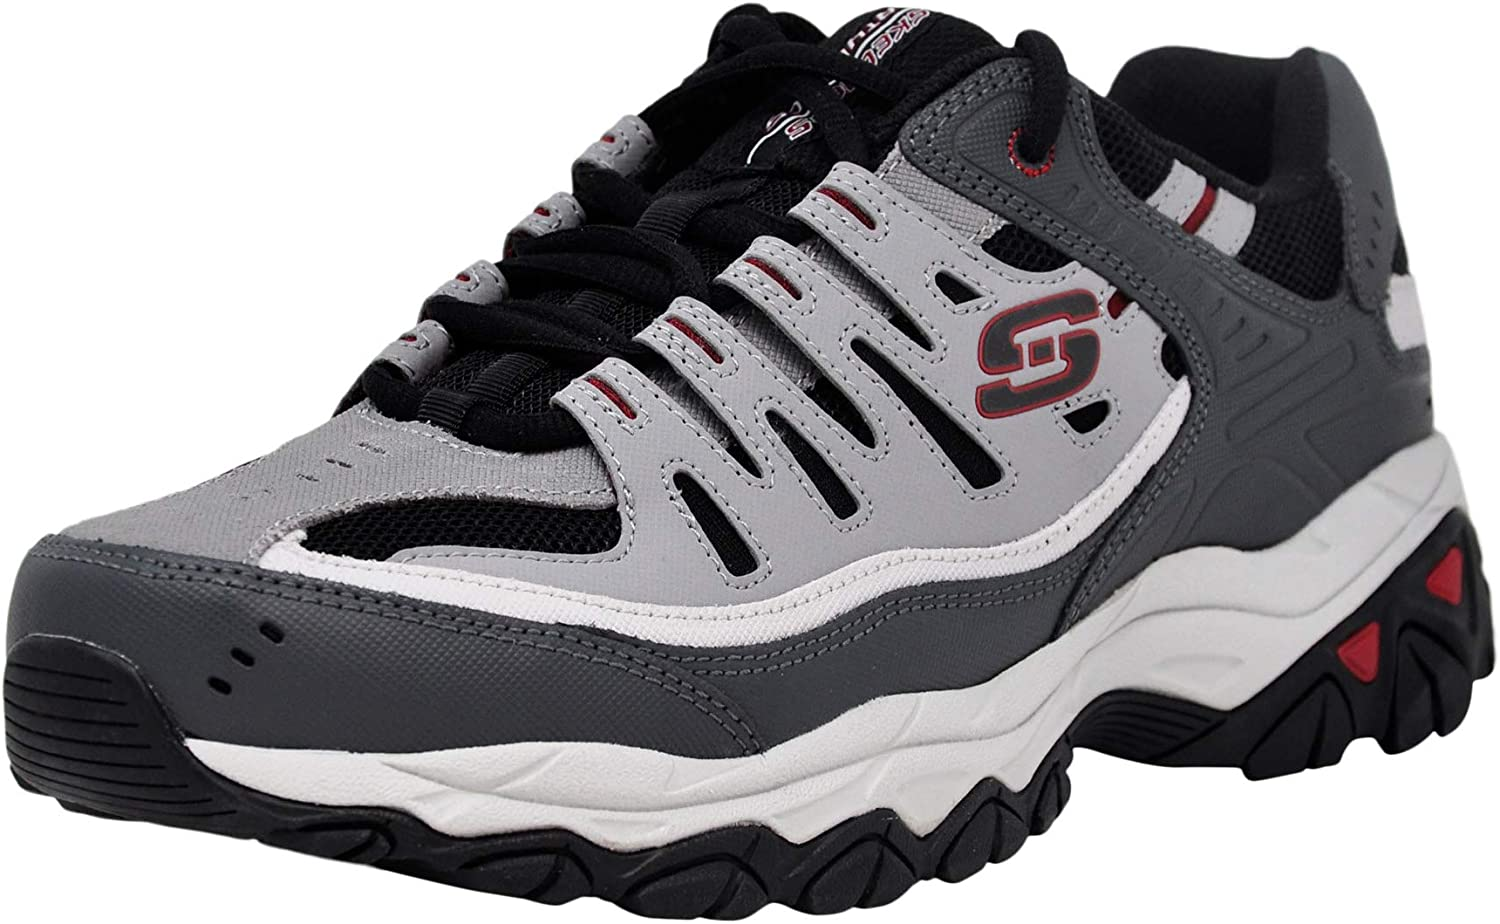 Skechers Mens After Burn Memory Fit Low Top Shoes Black: Amazon ...